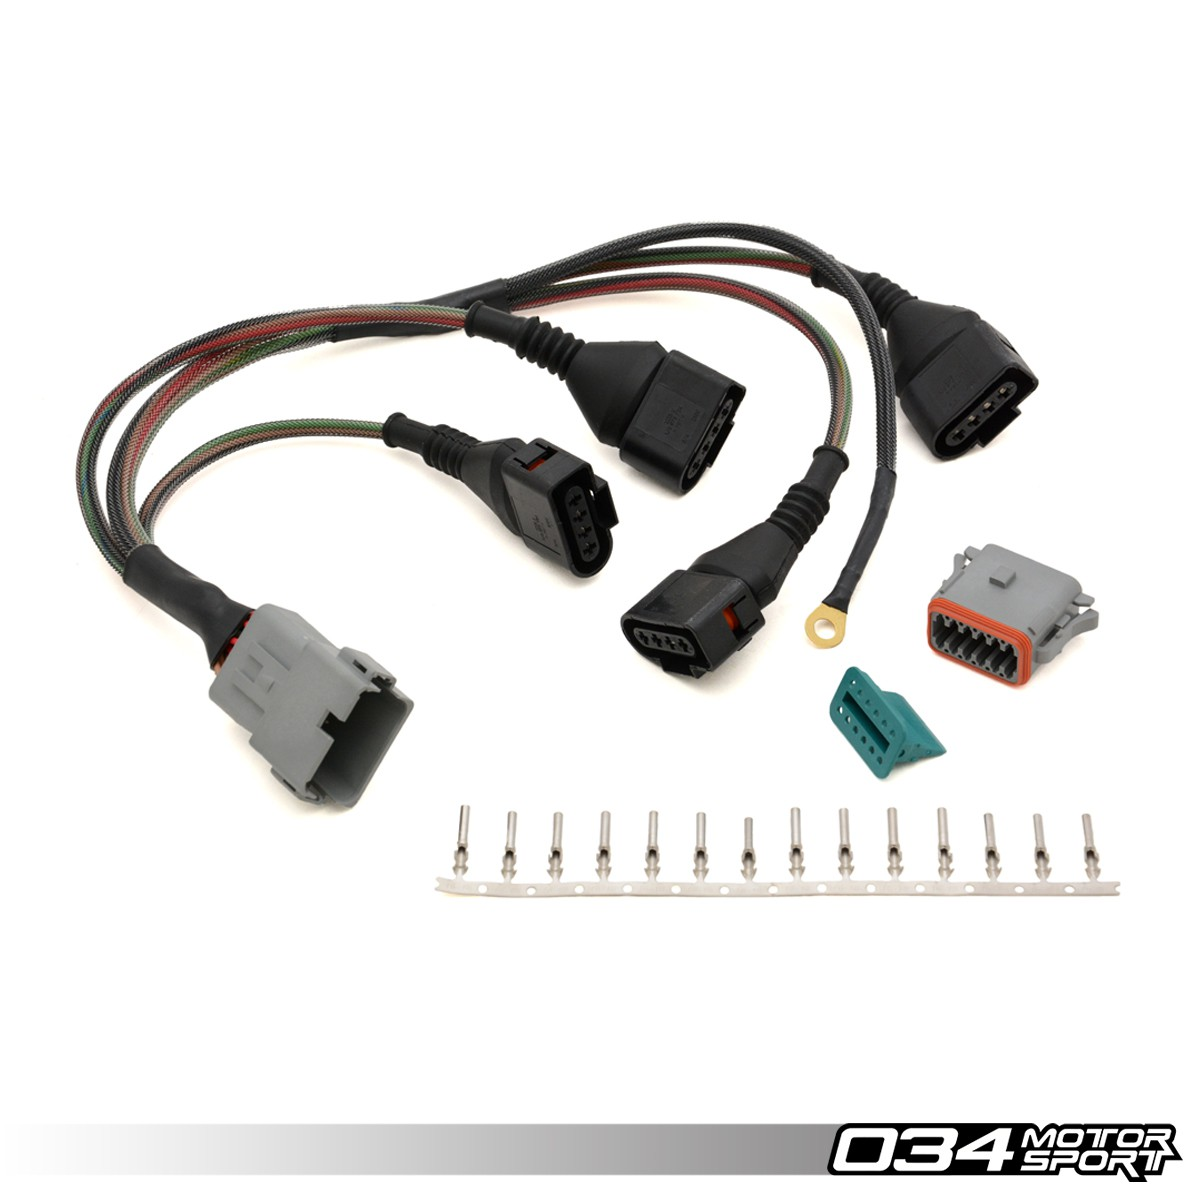 repair update harness audi volkswagen 18t with 4 wire coils 034motorsport 034 701 0004 2 repair update harness, audi volkswagen 1 8t with 4 wire coils Audi Ignition Coil Problem at bakdesigns.co